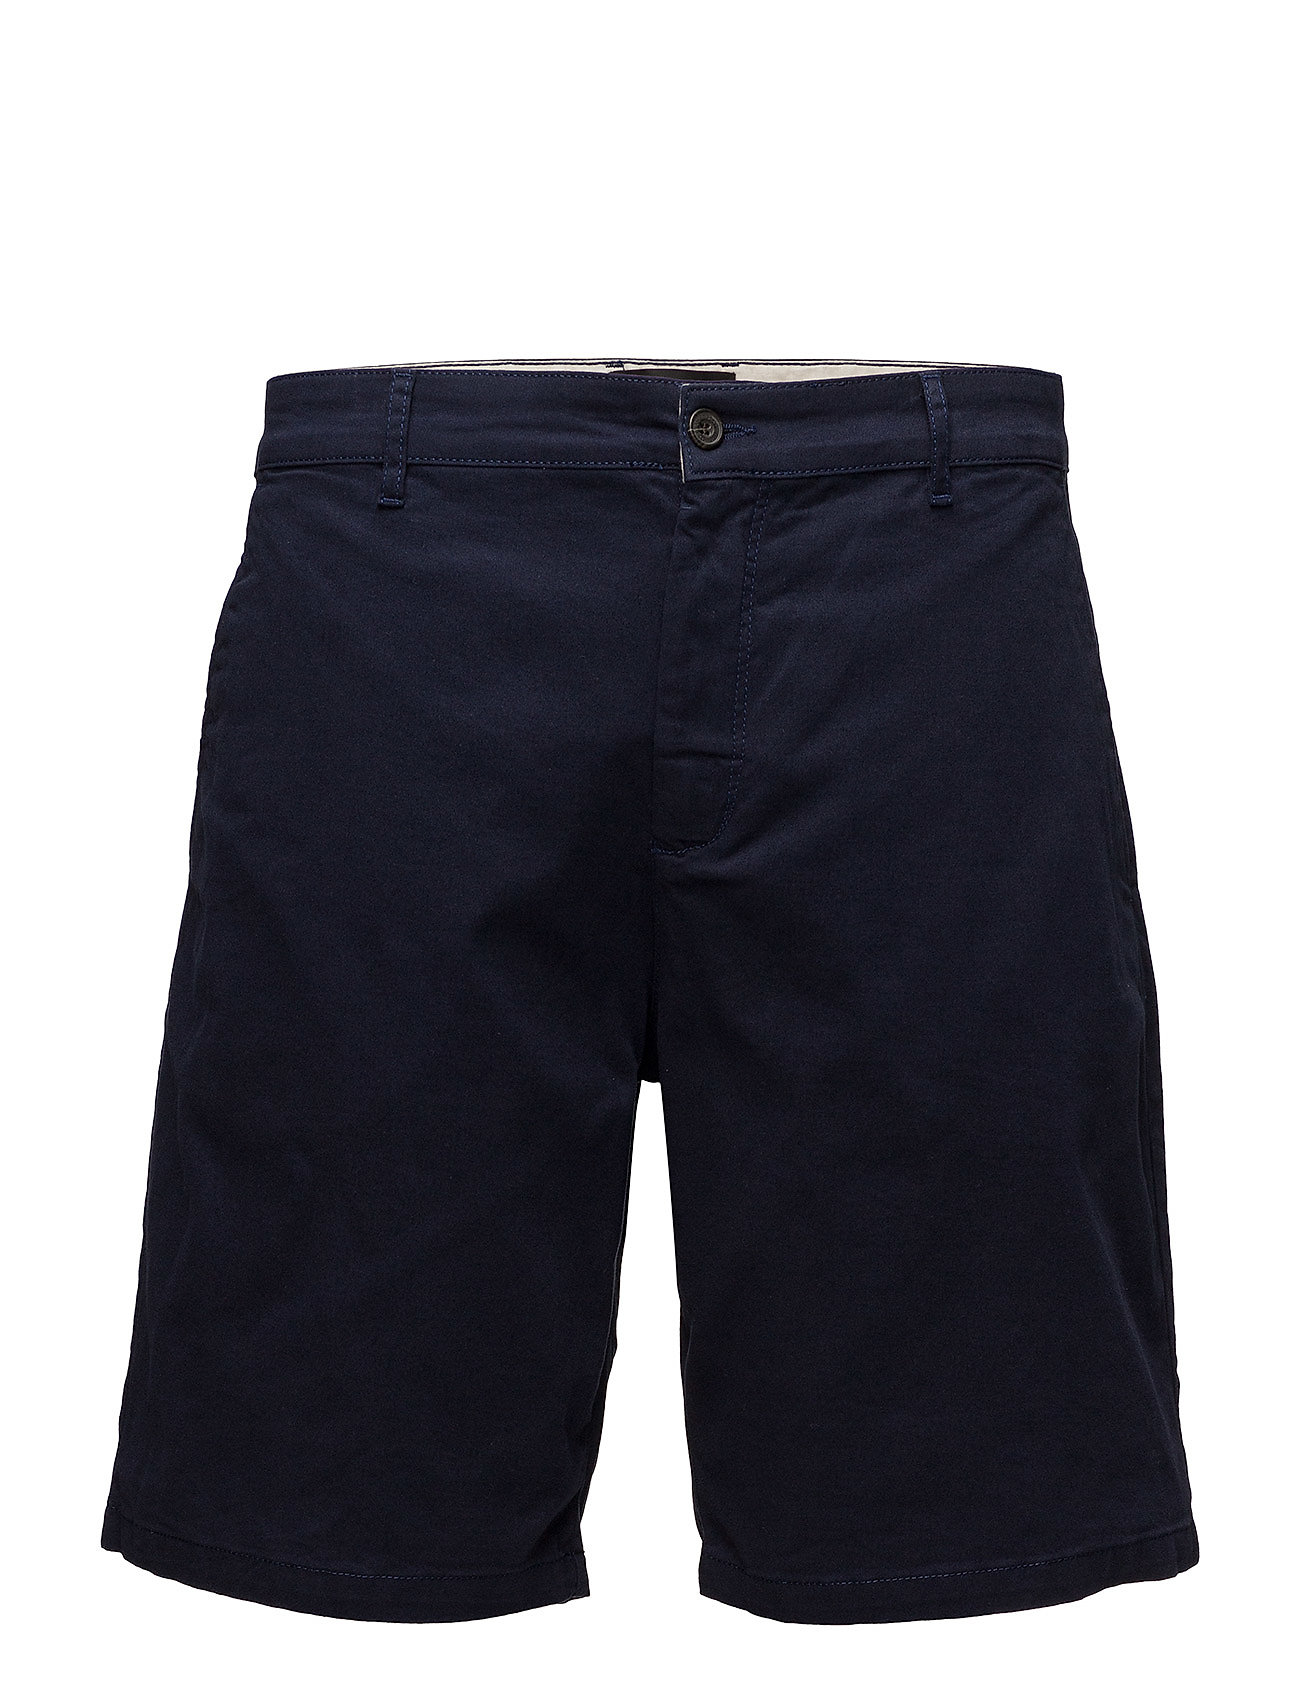 Lyle & Scott Chino Short - NAVY